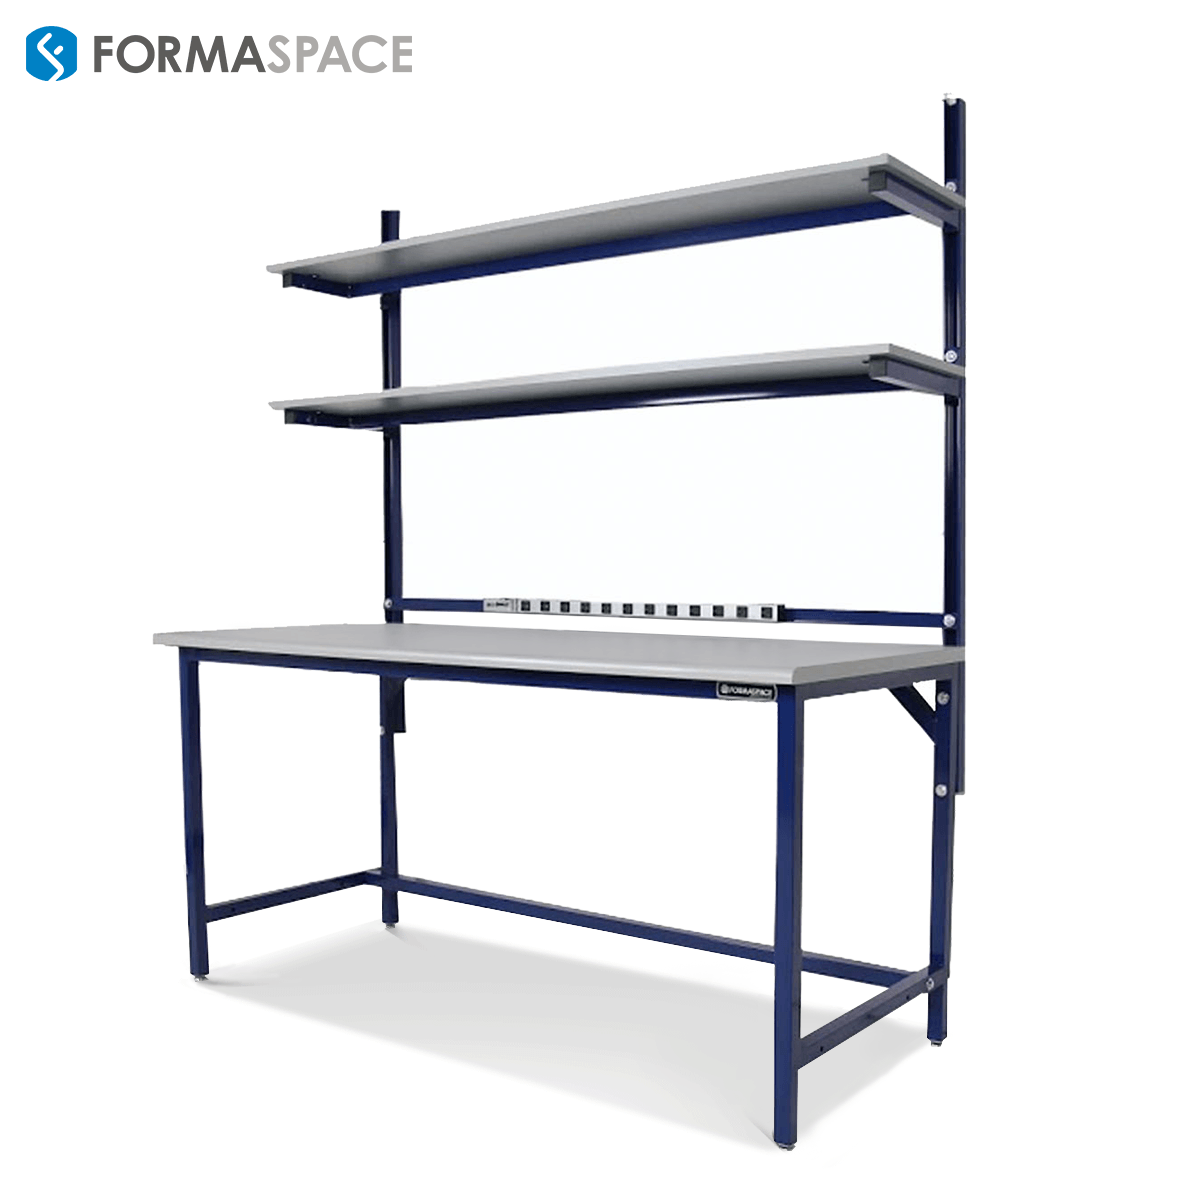 Benchmarx with Blue Powder Coated Steel Frame